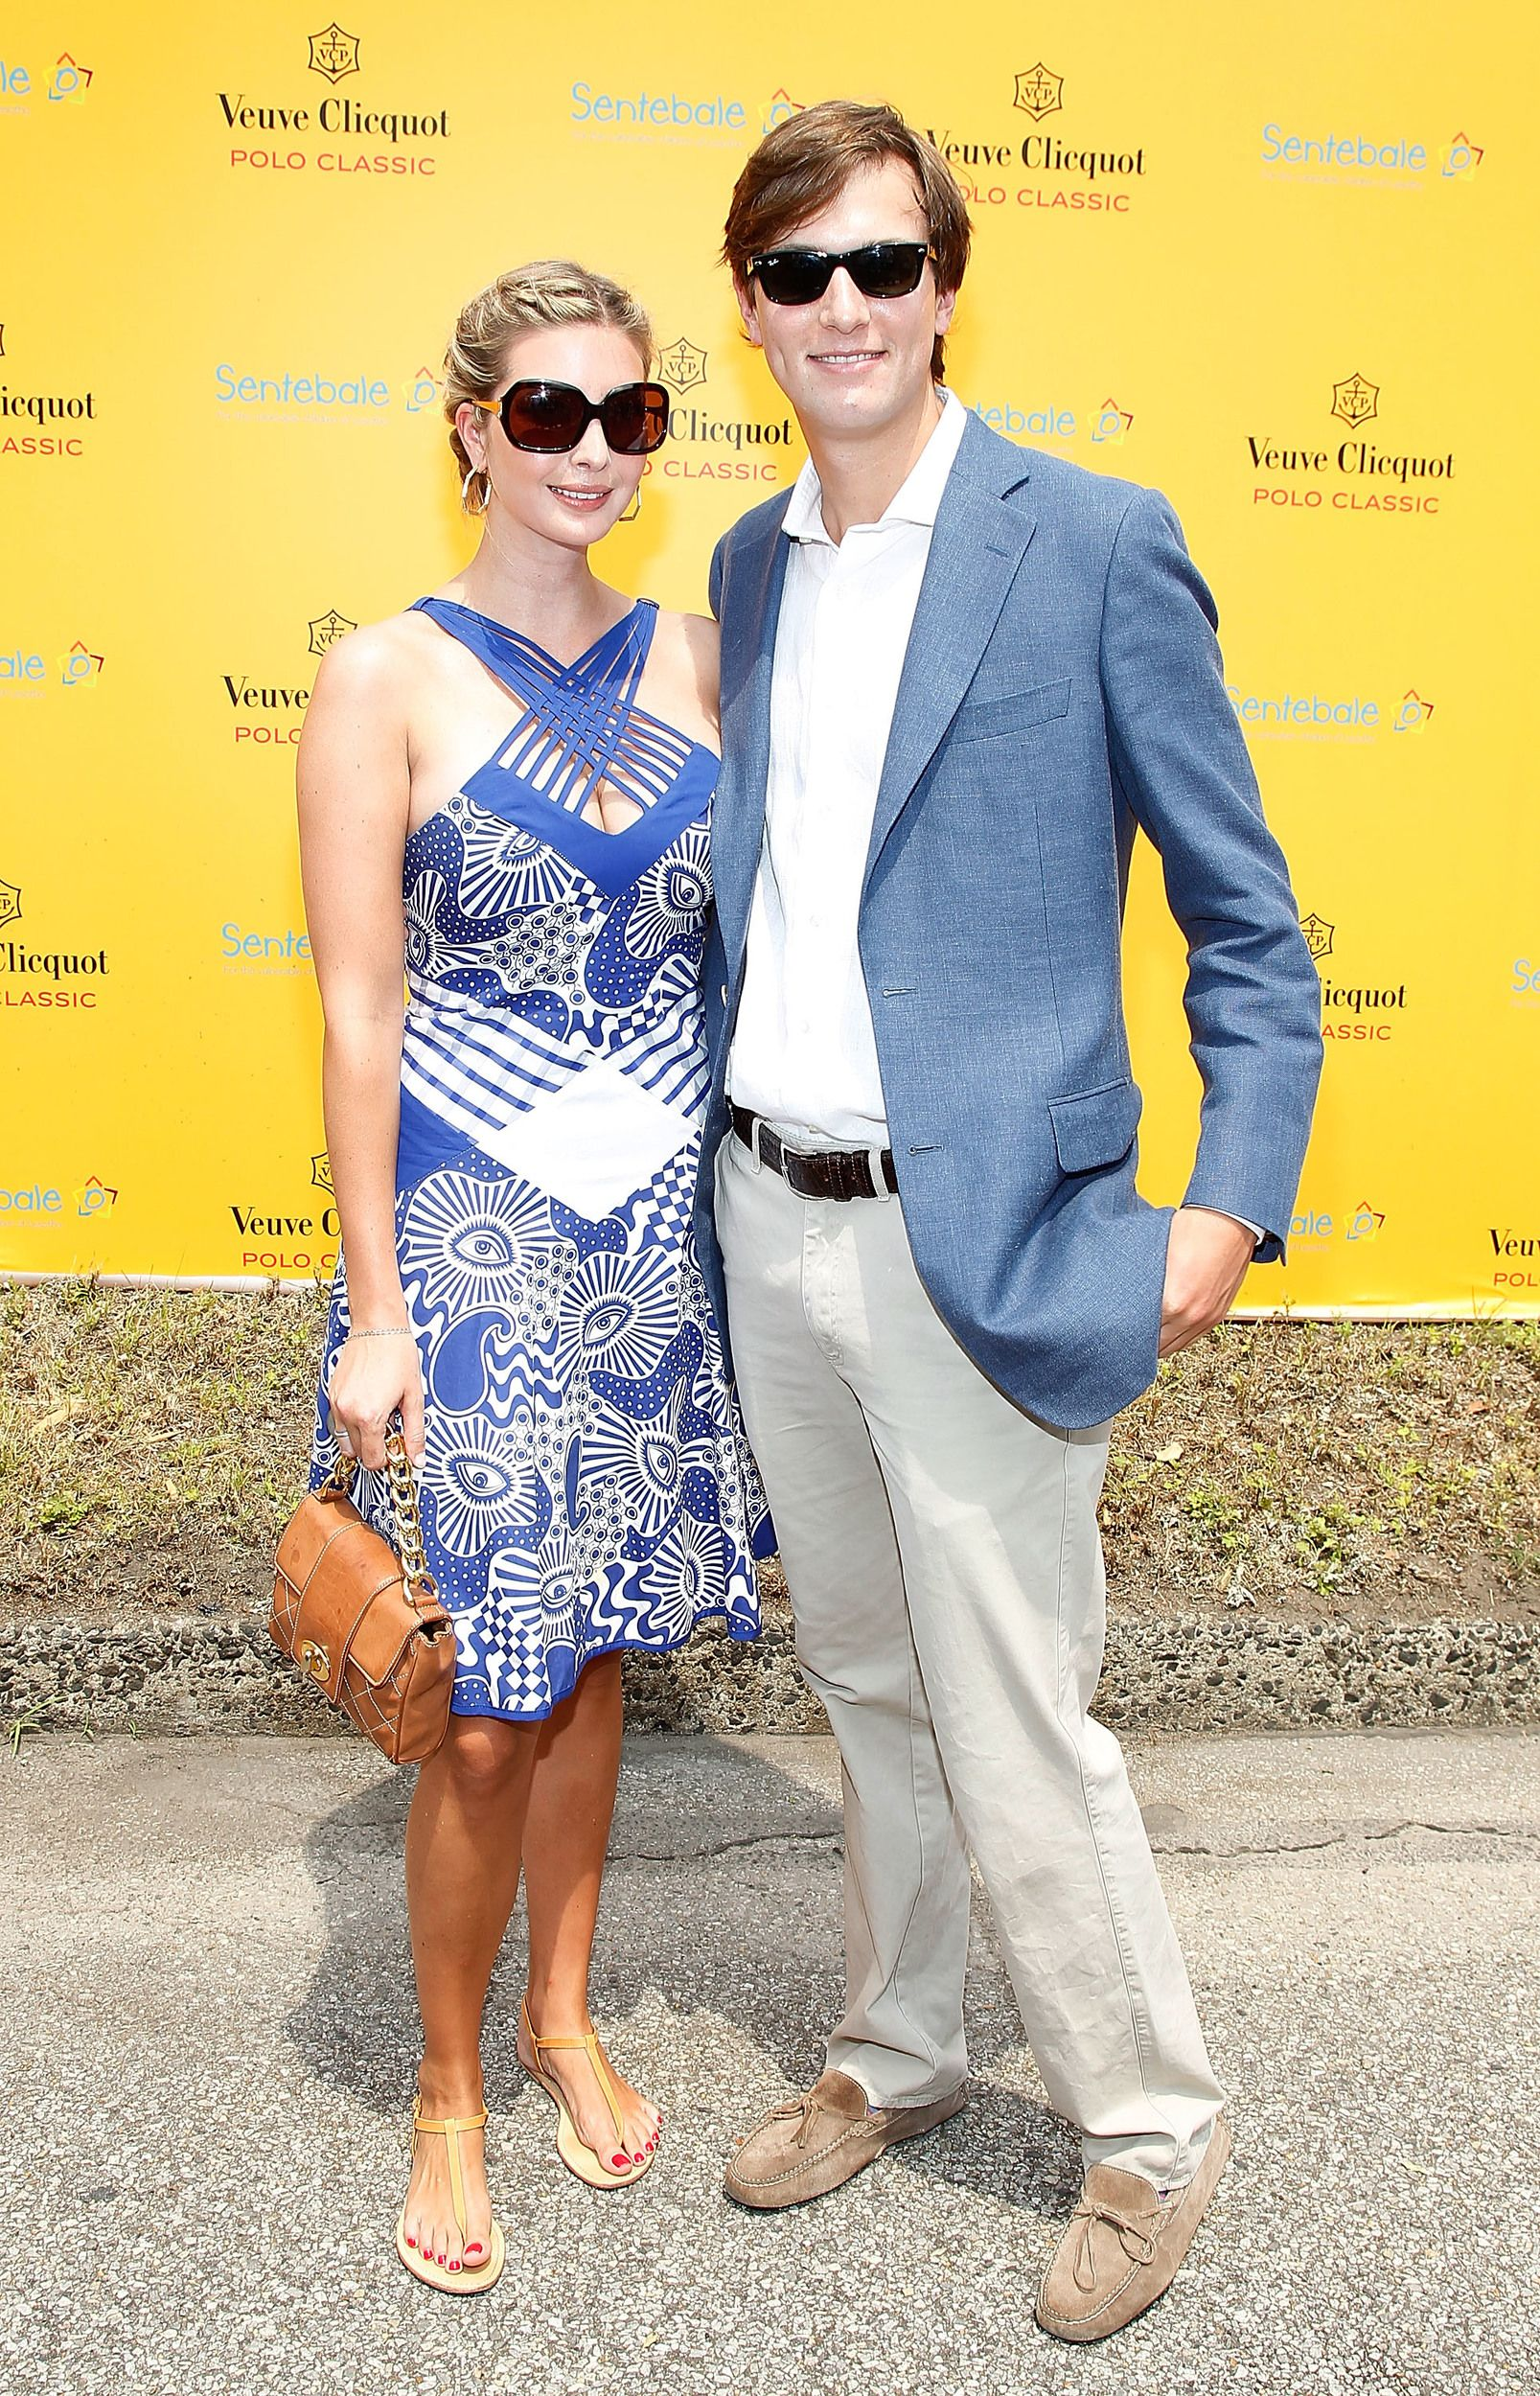 NEW YORK - JUNE 27: Ivanka Trump and Jared Kushner attend the 3rd annual Veuve Clicquot Polo Classic on Governors Island on June 27, 2010 in New York City.  (Photo by Joe Kohen/WireImage) via @AOL_Lifestyle Read more: https://www.aol.com/article/entertainment/2017/01/19/ivanka-trumps-dating-history-includes-hollywood-actor-topher-gr/21658741/?a_dgi=aolshare_pinterest#fullscreen